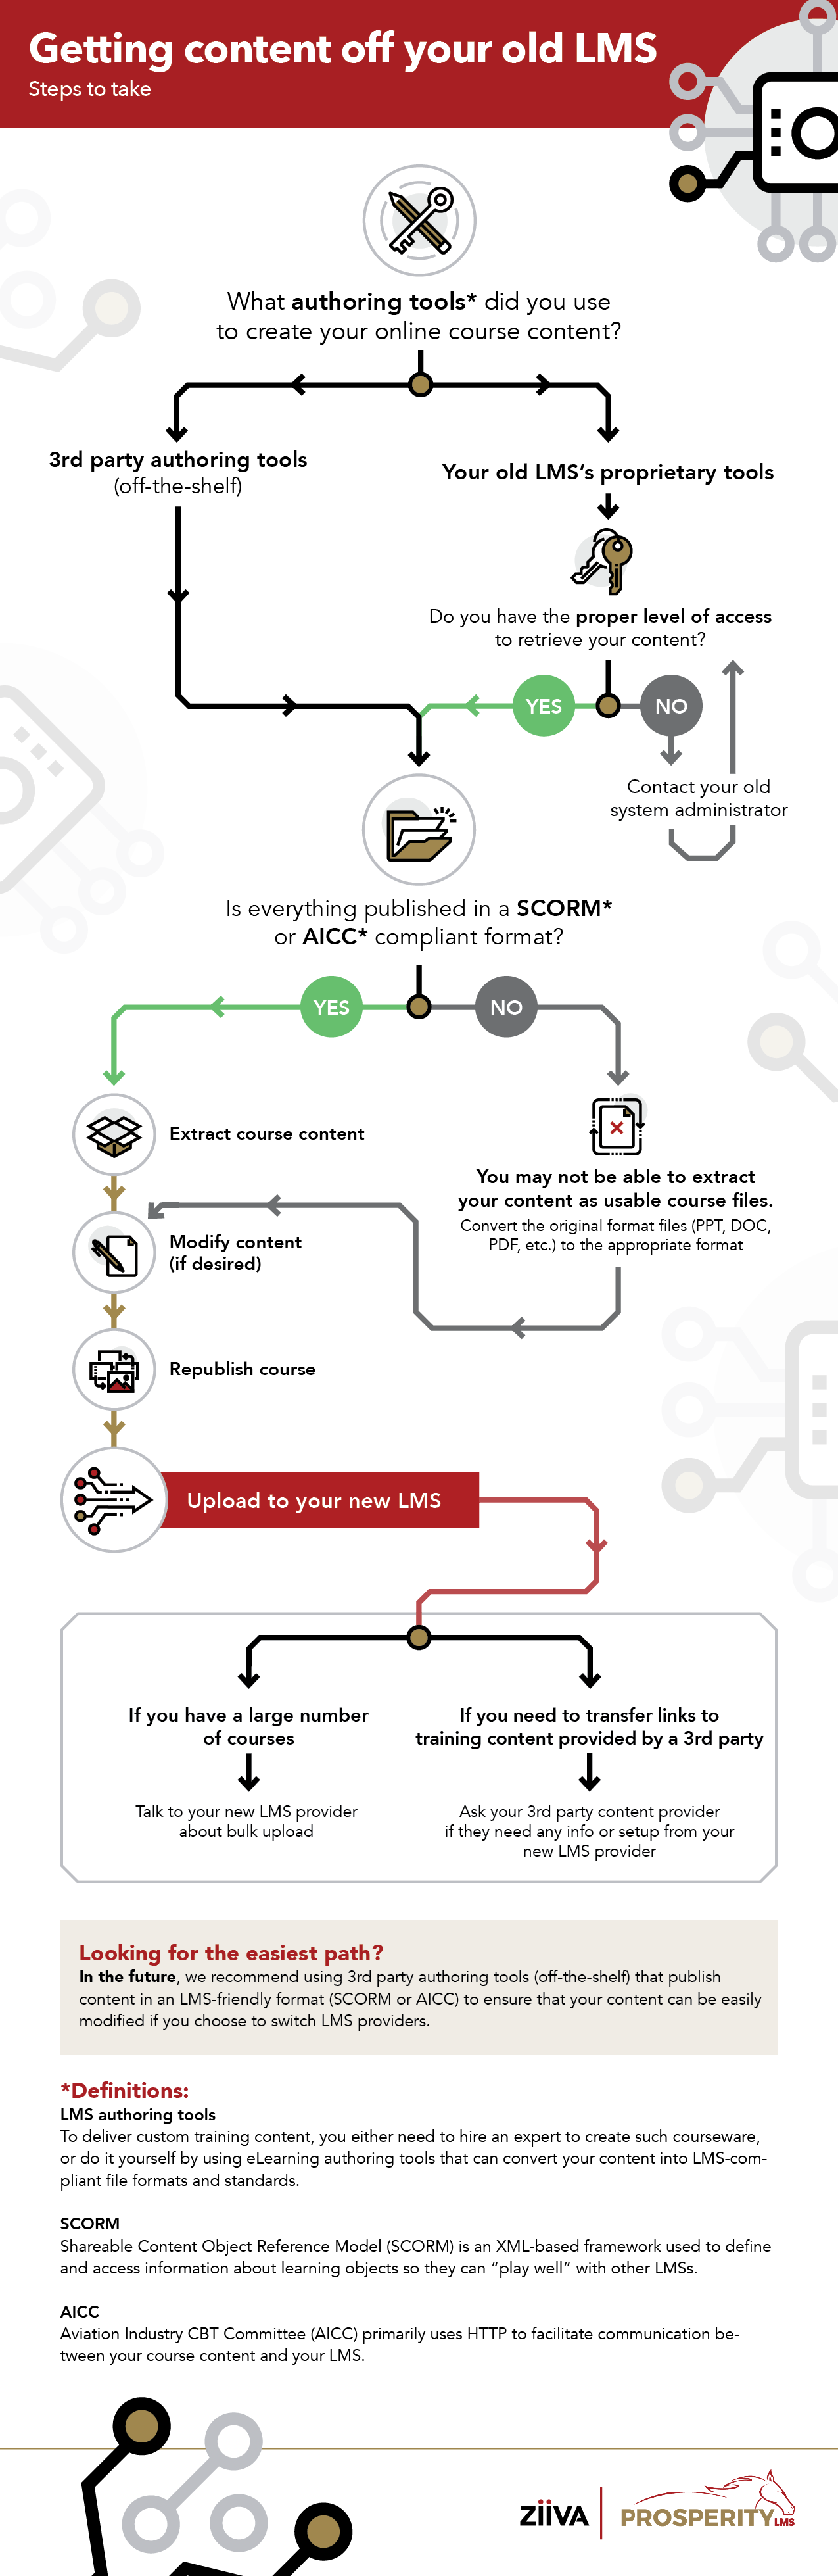 An infographic showing how to get your content off your old LMS.